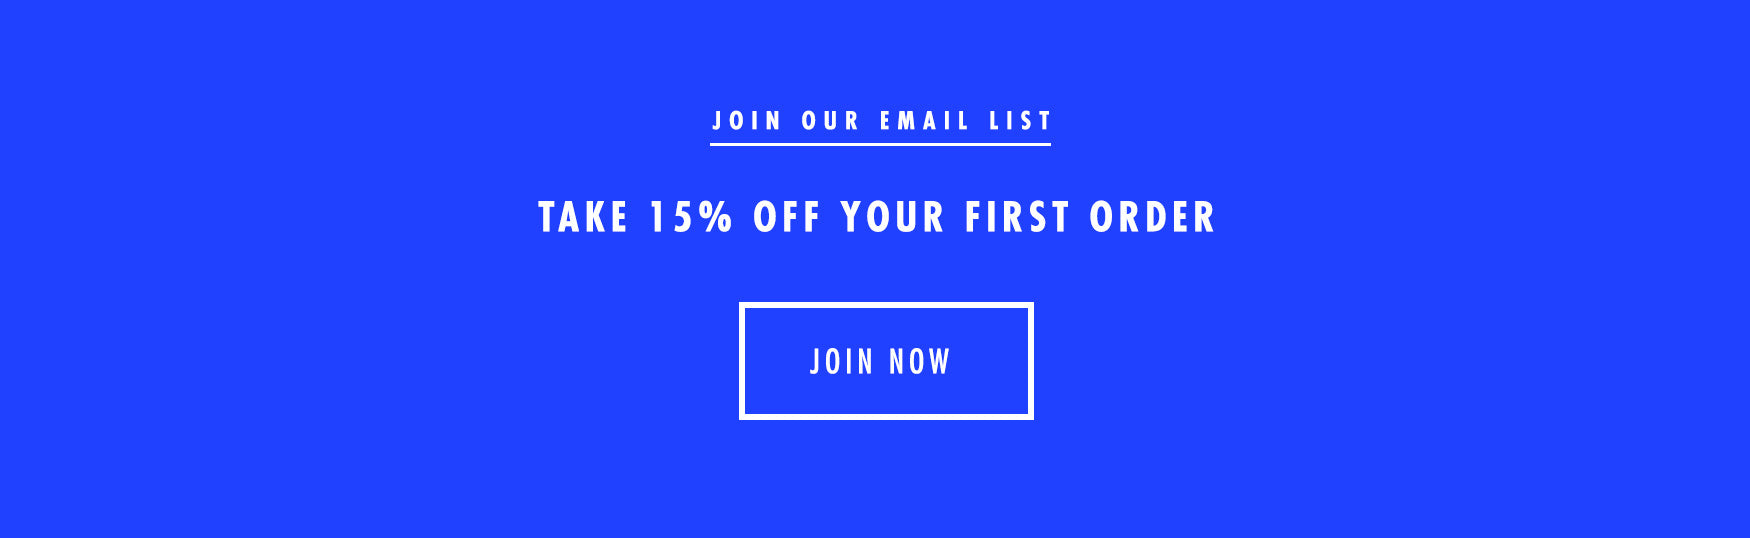 Sign Our Email List